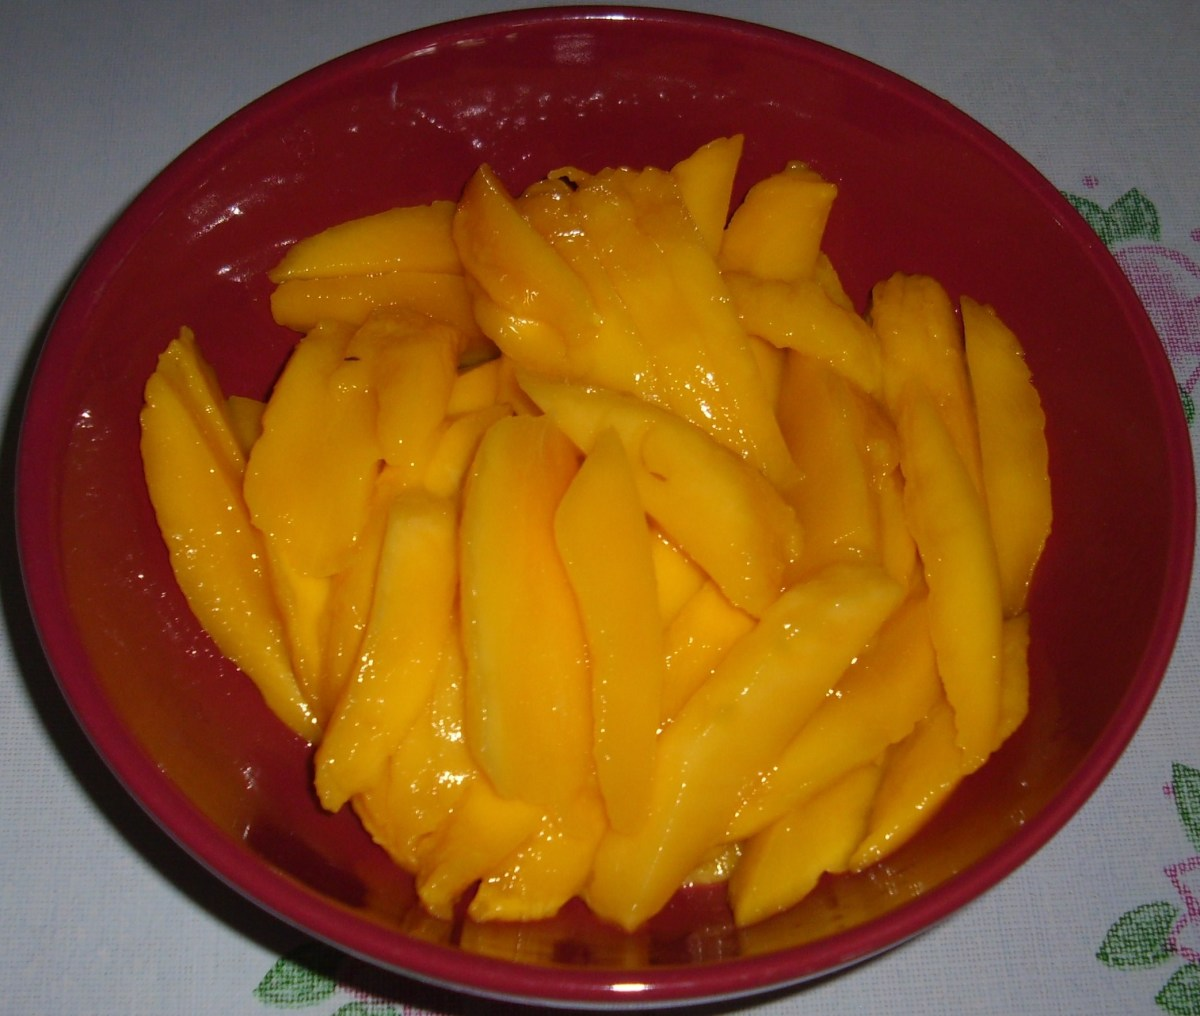 Sliced ripe mangoes.